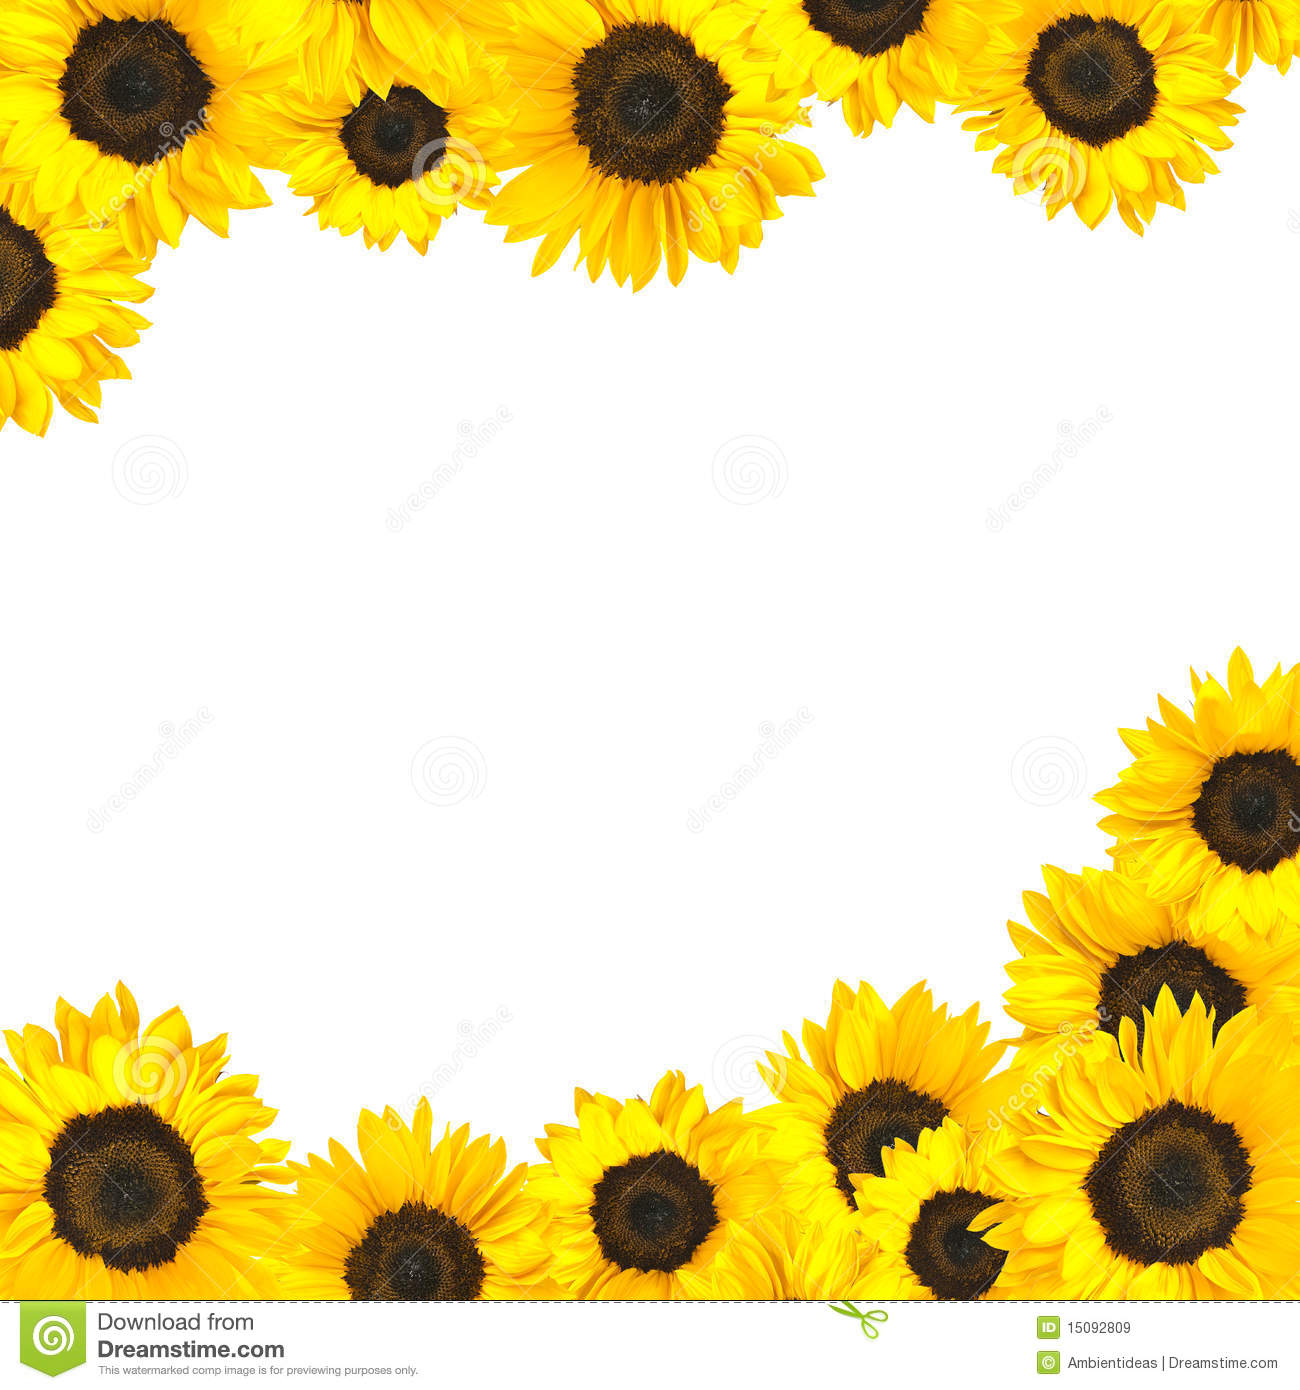 Border free download best. Boarder clipart sunflower